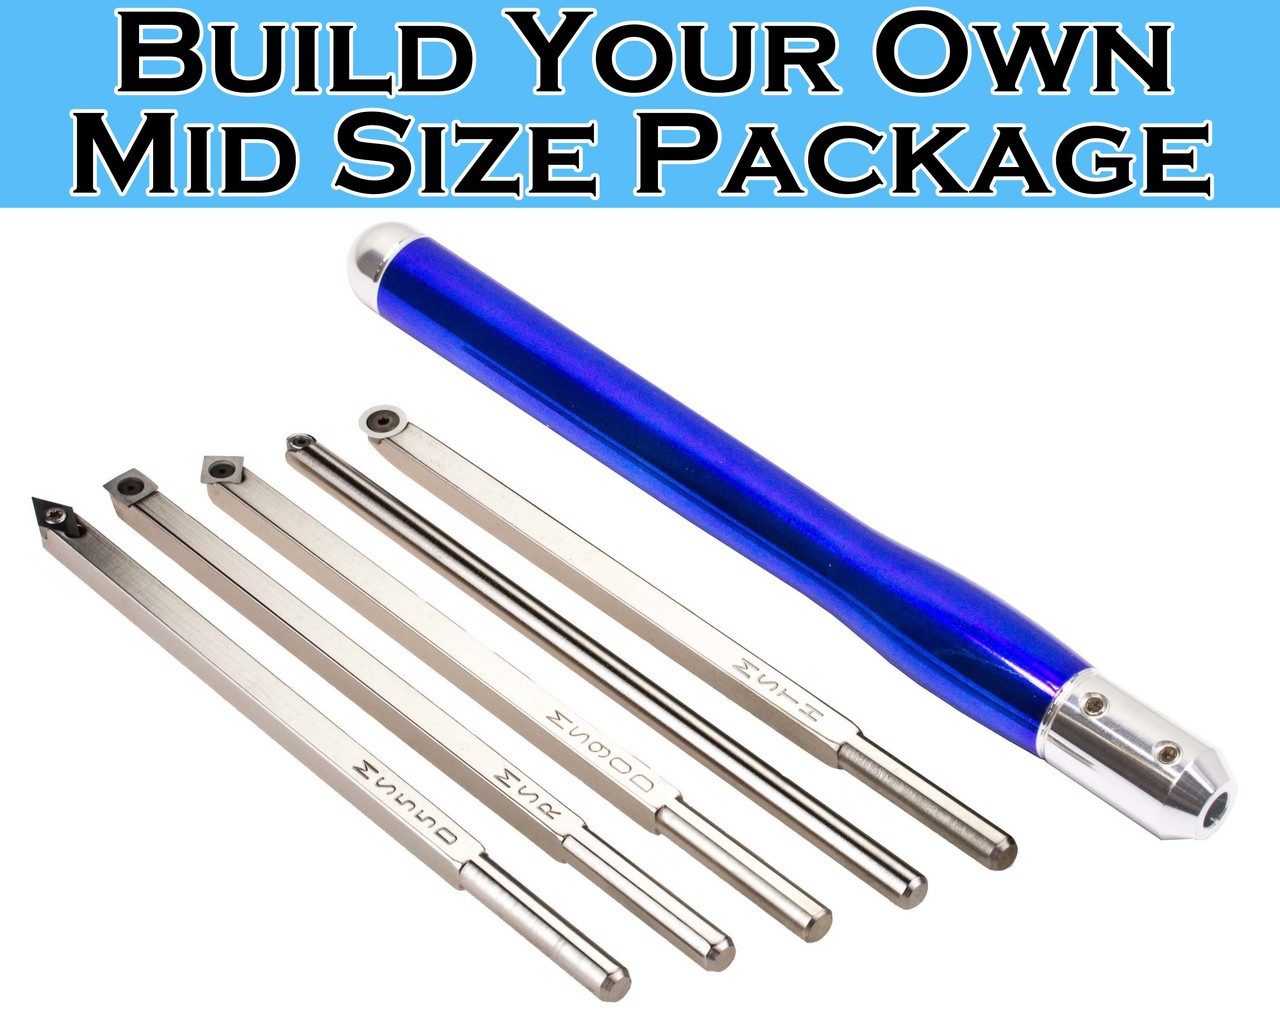 Build your own package of Mid Size Carbide Simple Woodturning Tools